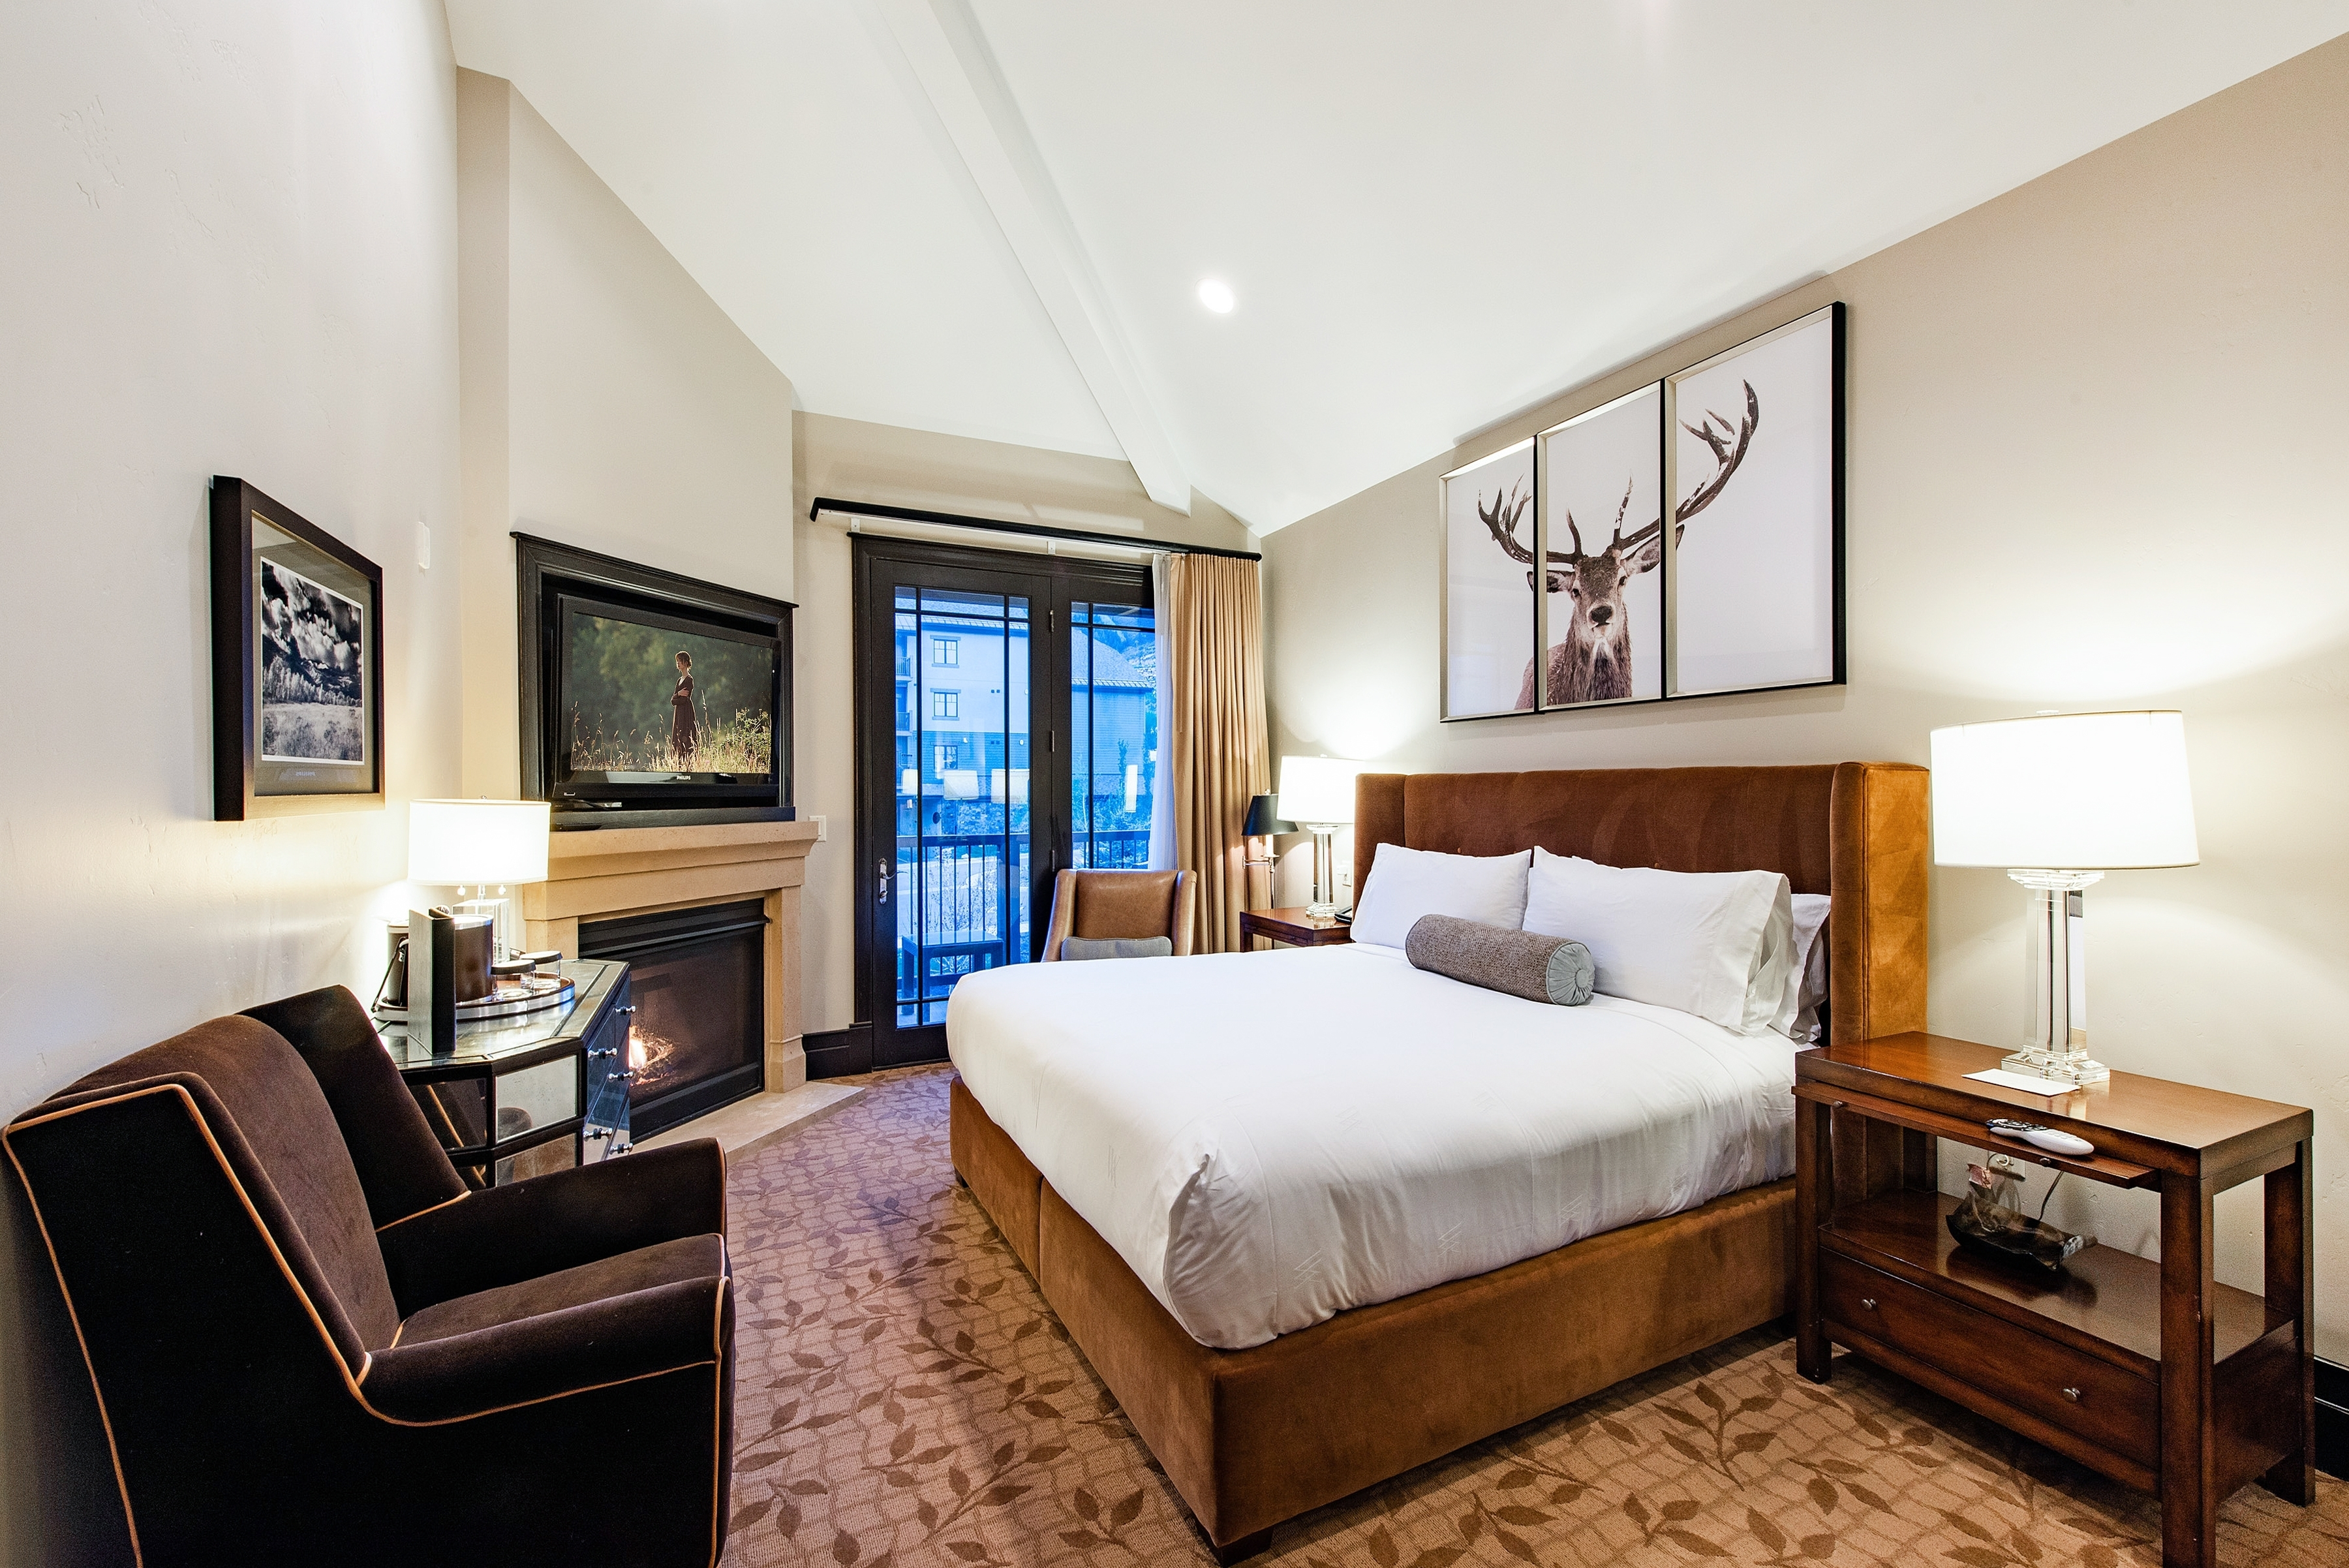 Lavish Hotel Room w/King Bed and Fireplace